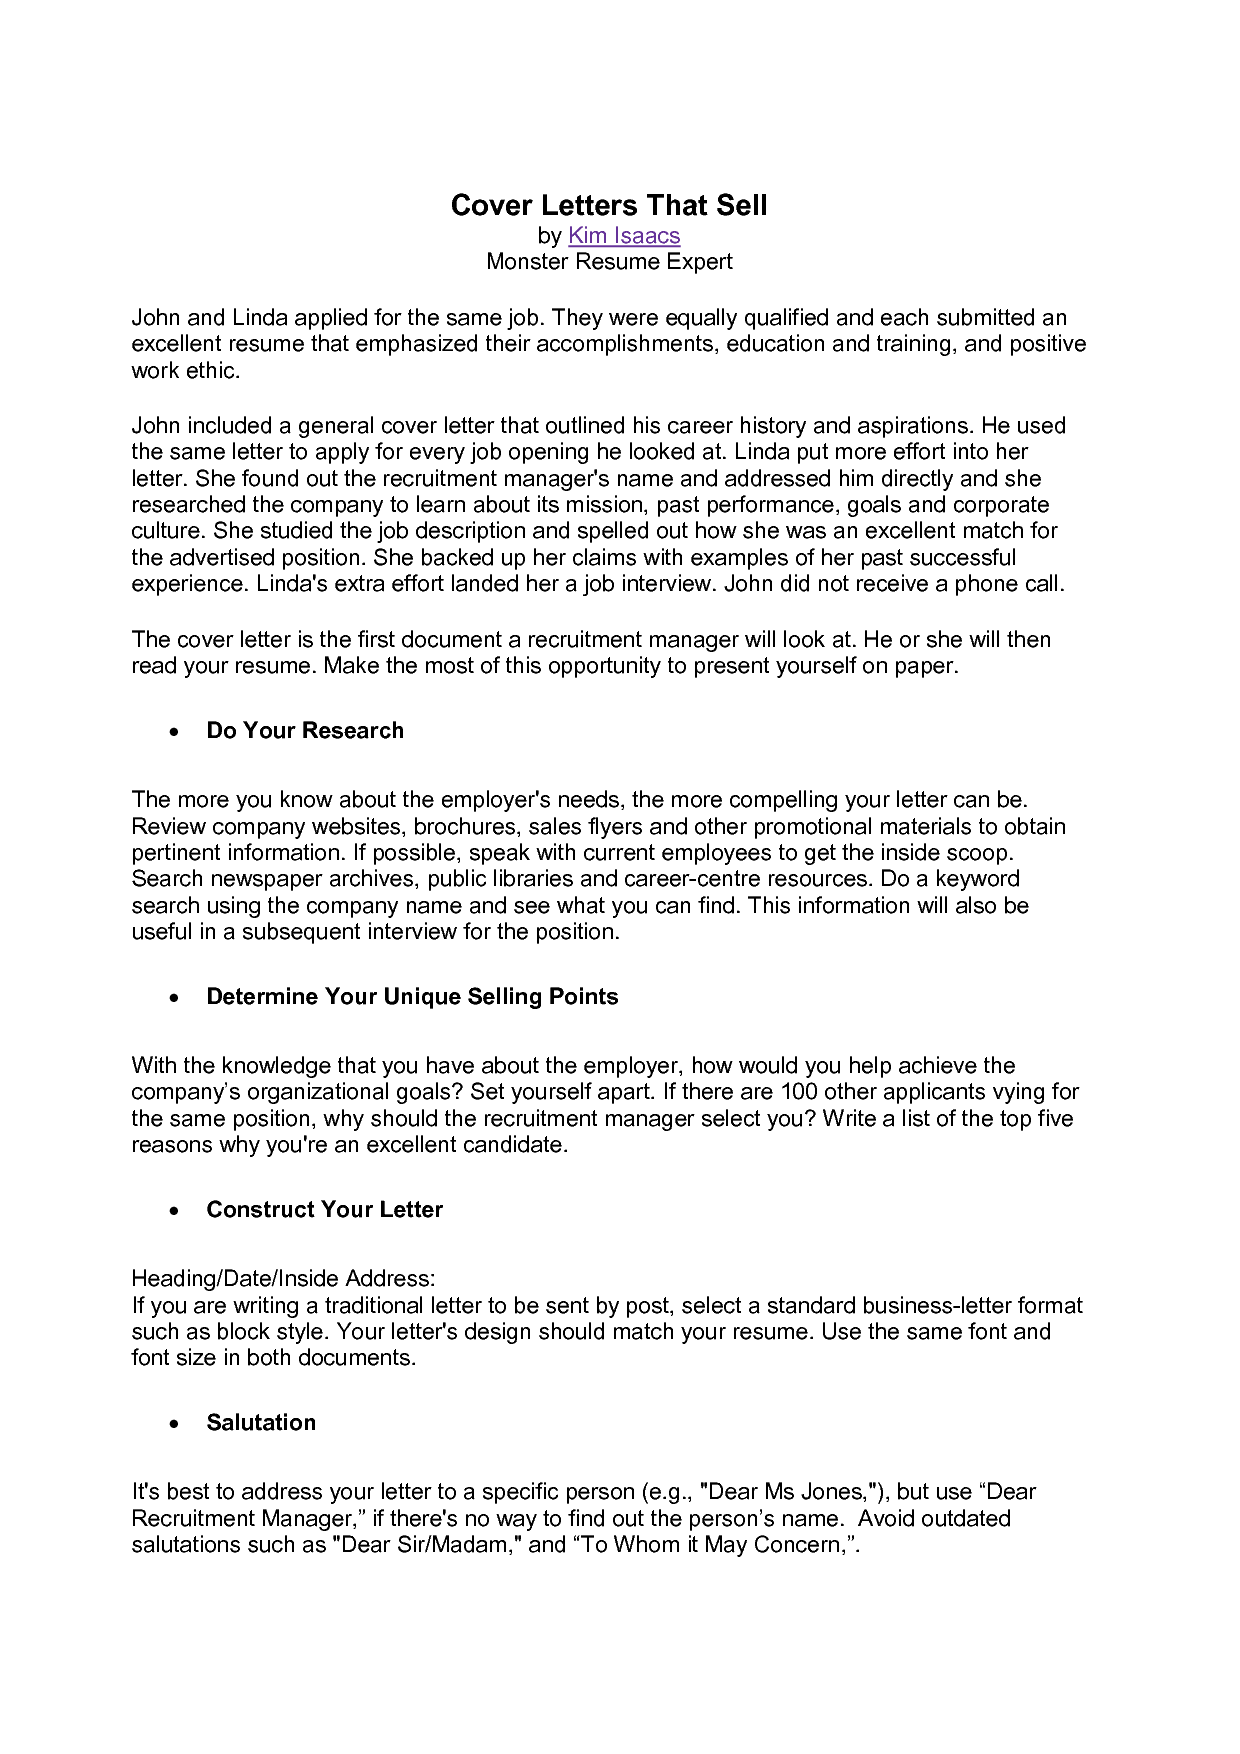 Microsoft Word Cover Letter Template Monster Cover Letter Free Download Monster Cover Letter Monster